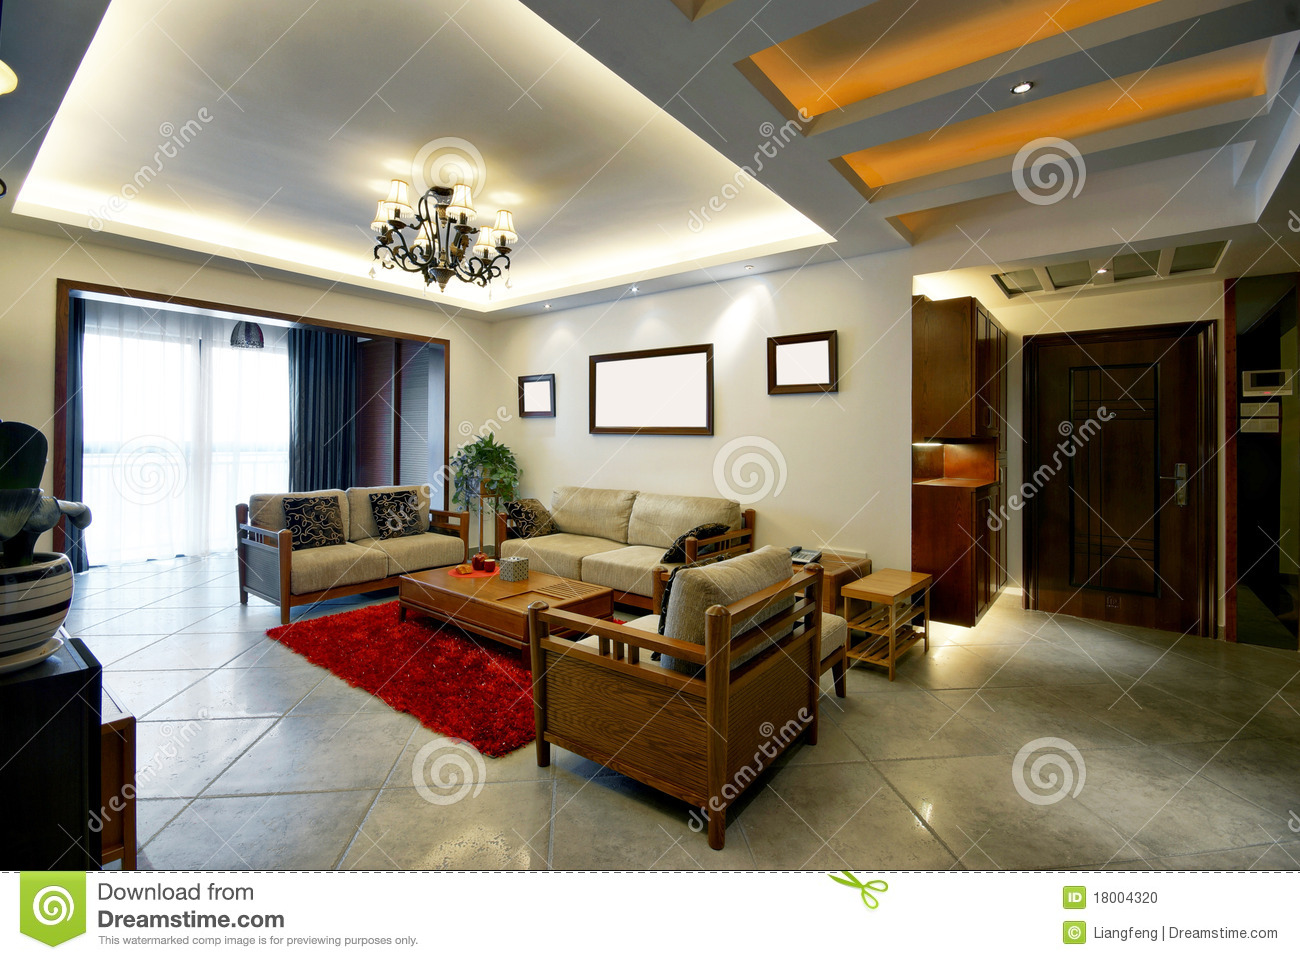 Beautiful Home Decor Prepossessing Beautiful Home Decor Stock Photo  Image 18004320 Inspiration